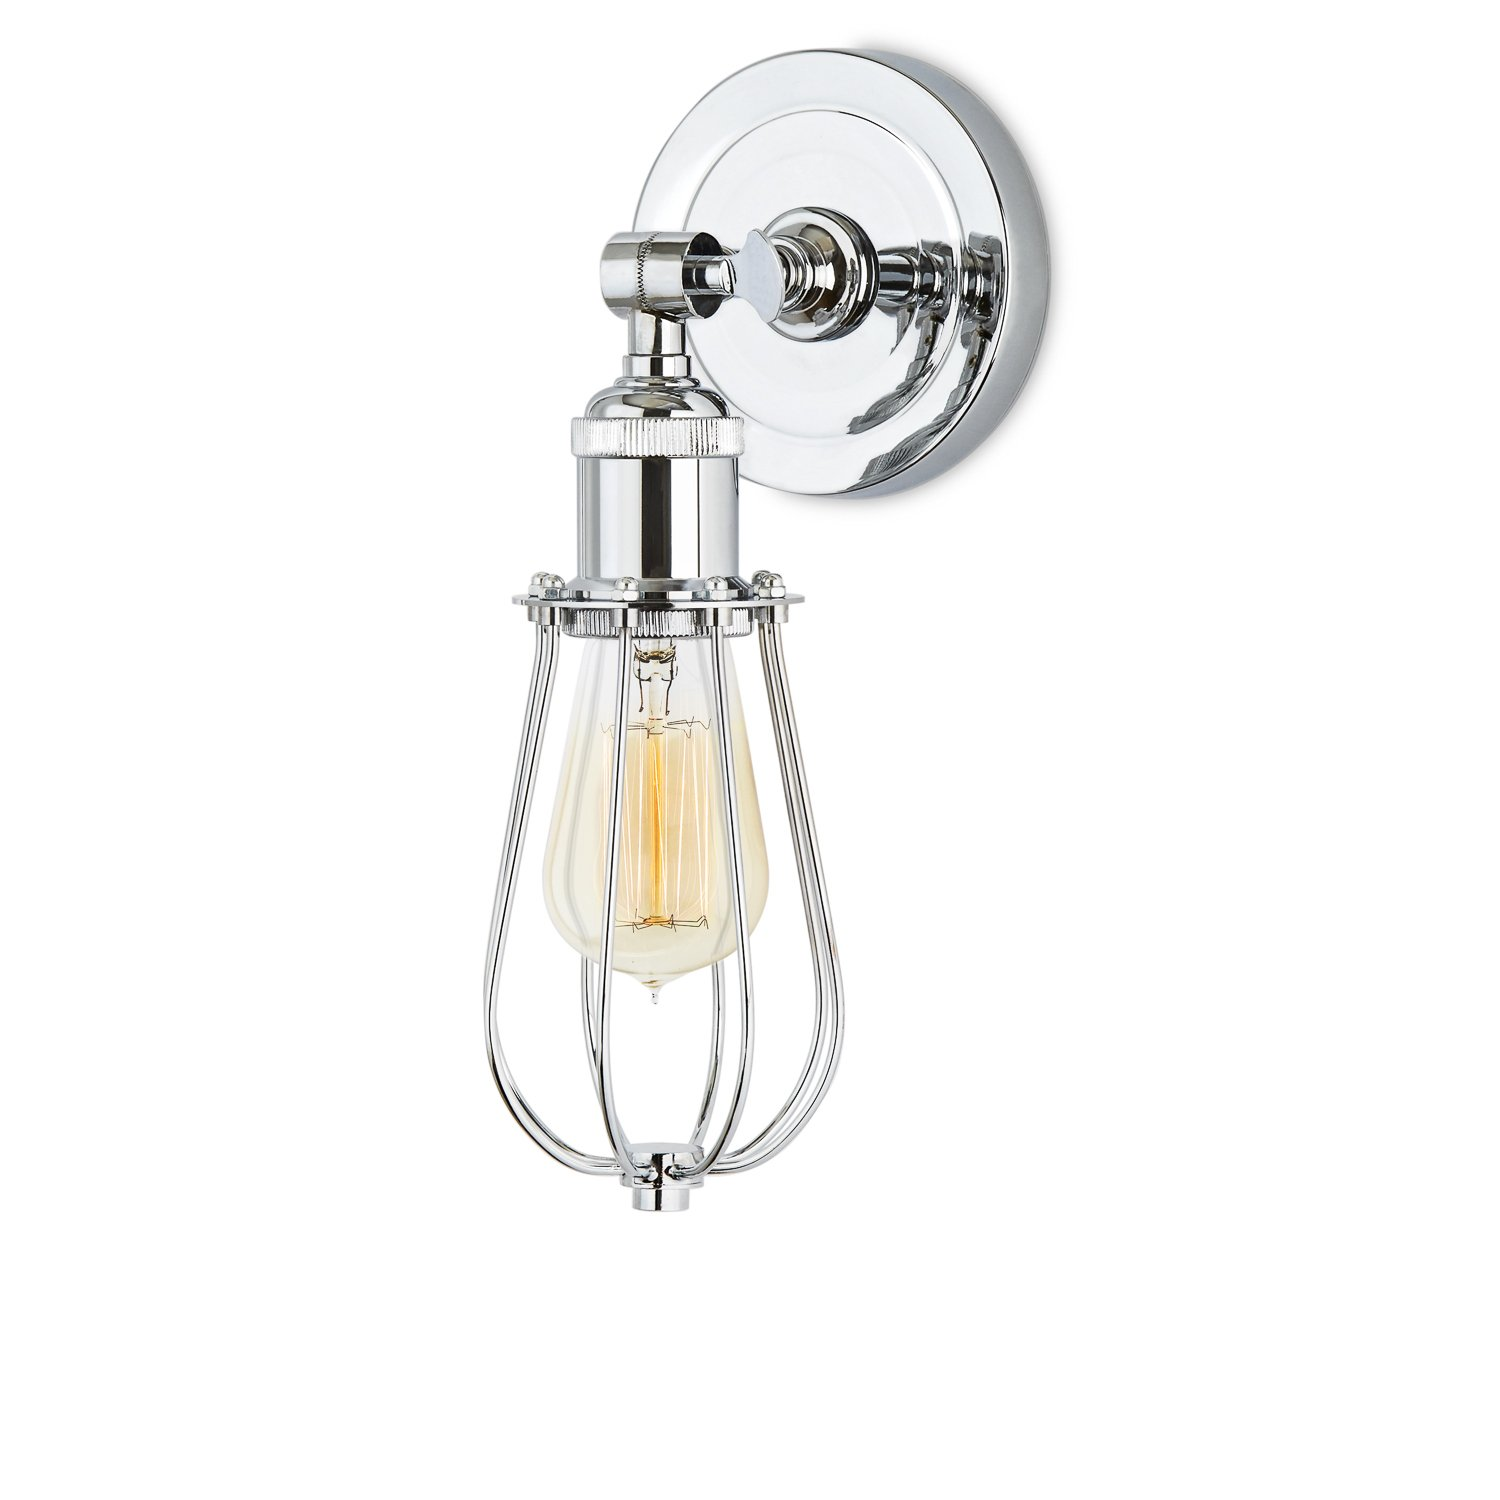 Chrome Wall Sconce Lighting - Cage Lamp with Edison Style Bulb Included, Dimmable, Brooklyn Bulb Co. Clifton Collection, ETL Listed